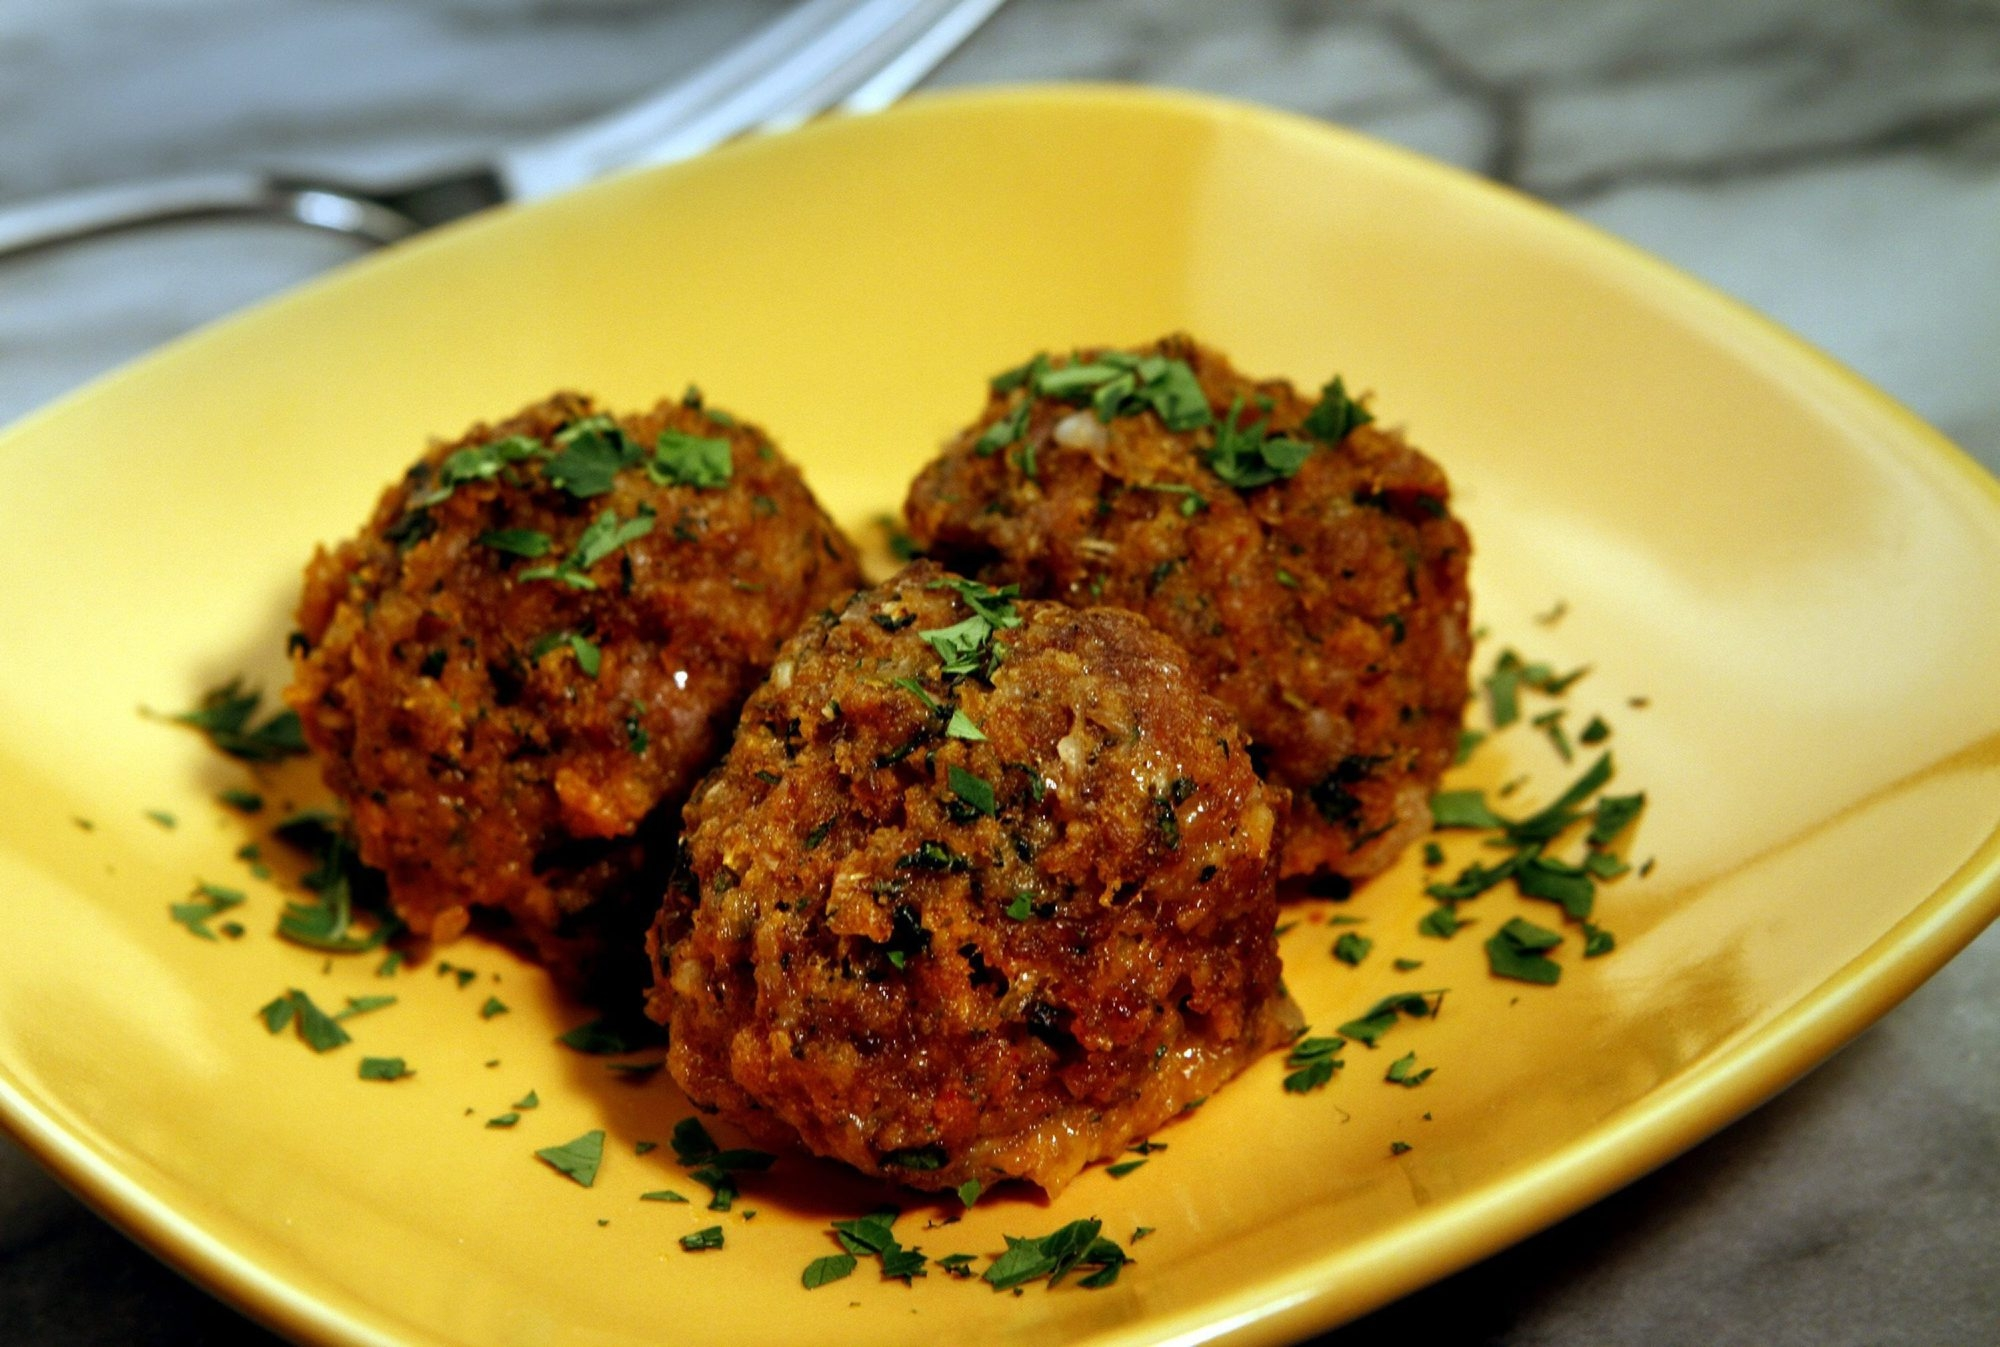 Roasted garlic, fresh basil and cilantro, along with dried oregano, Spanish paprika and grated Manchego cheese lend rich, deep flavor to these tender pork-and-beef meatballs served at Cafe Sevilla in Riverside, Calif.